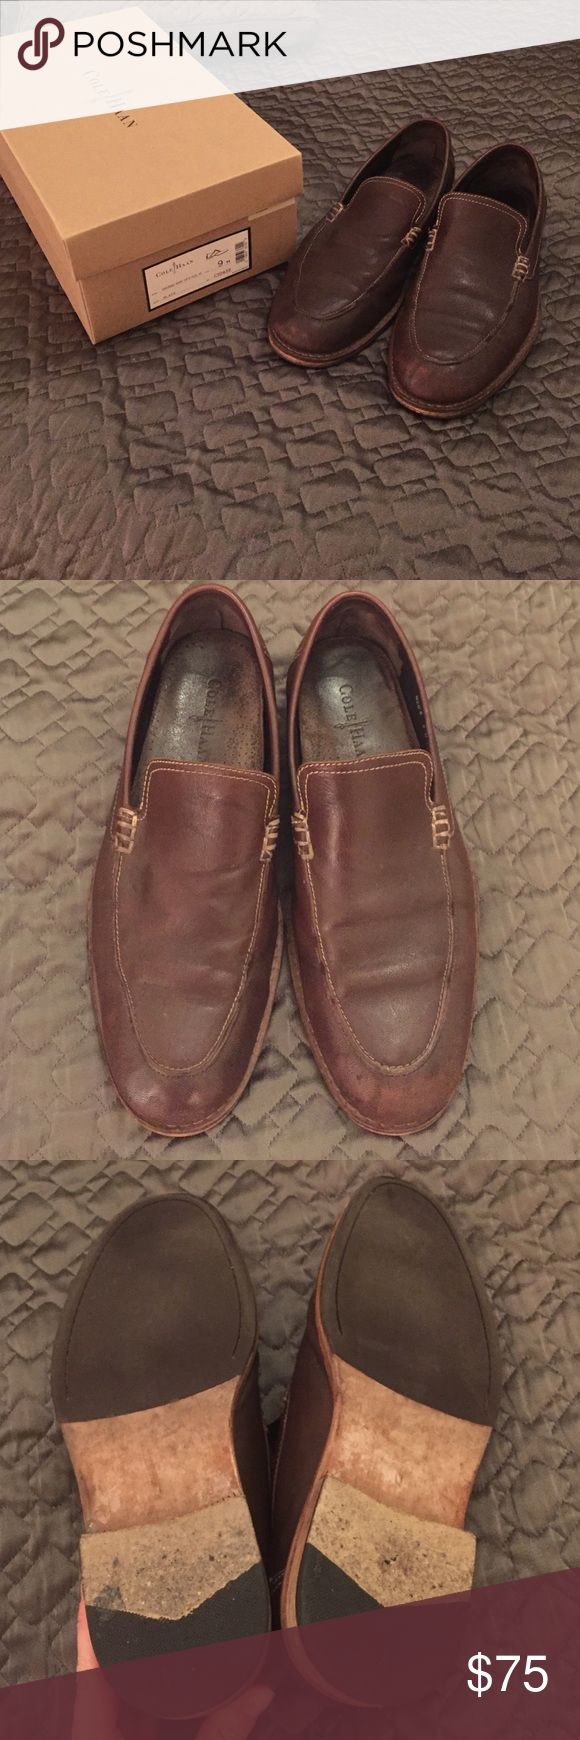 Cole Haan Brown Shoes Some fading on toe, great dark brown comfortable dress shoes. Cole Haan Shoes Loafers & Slip-Ons